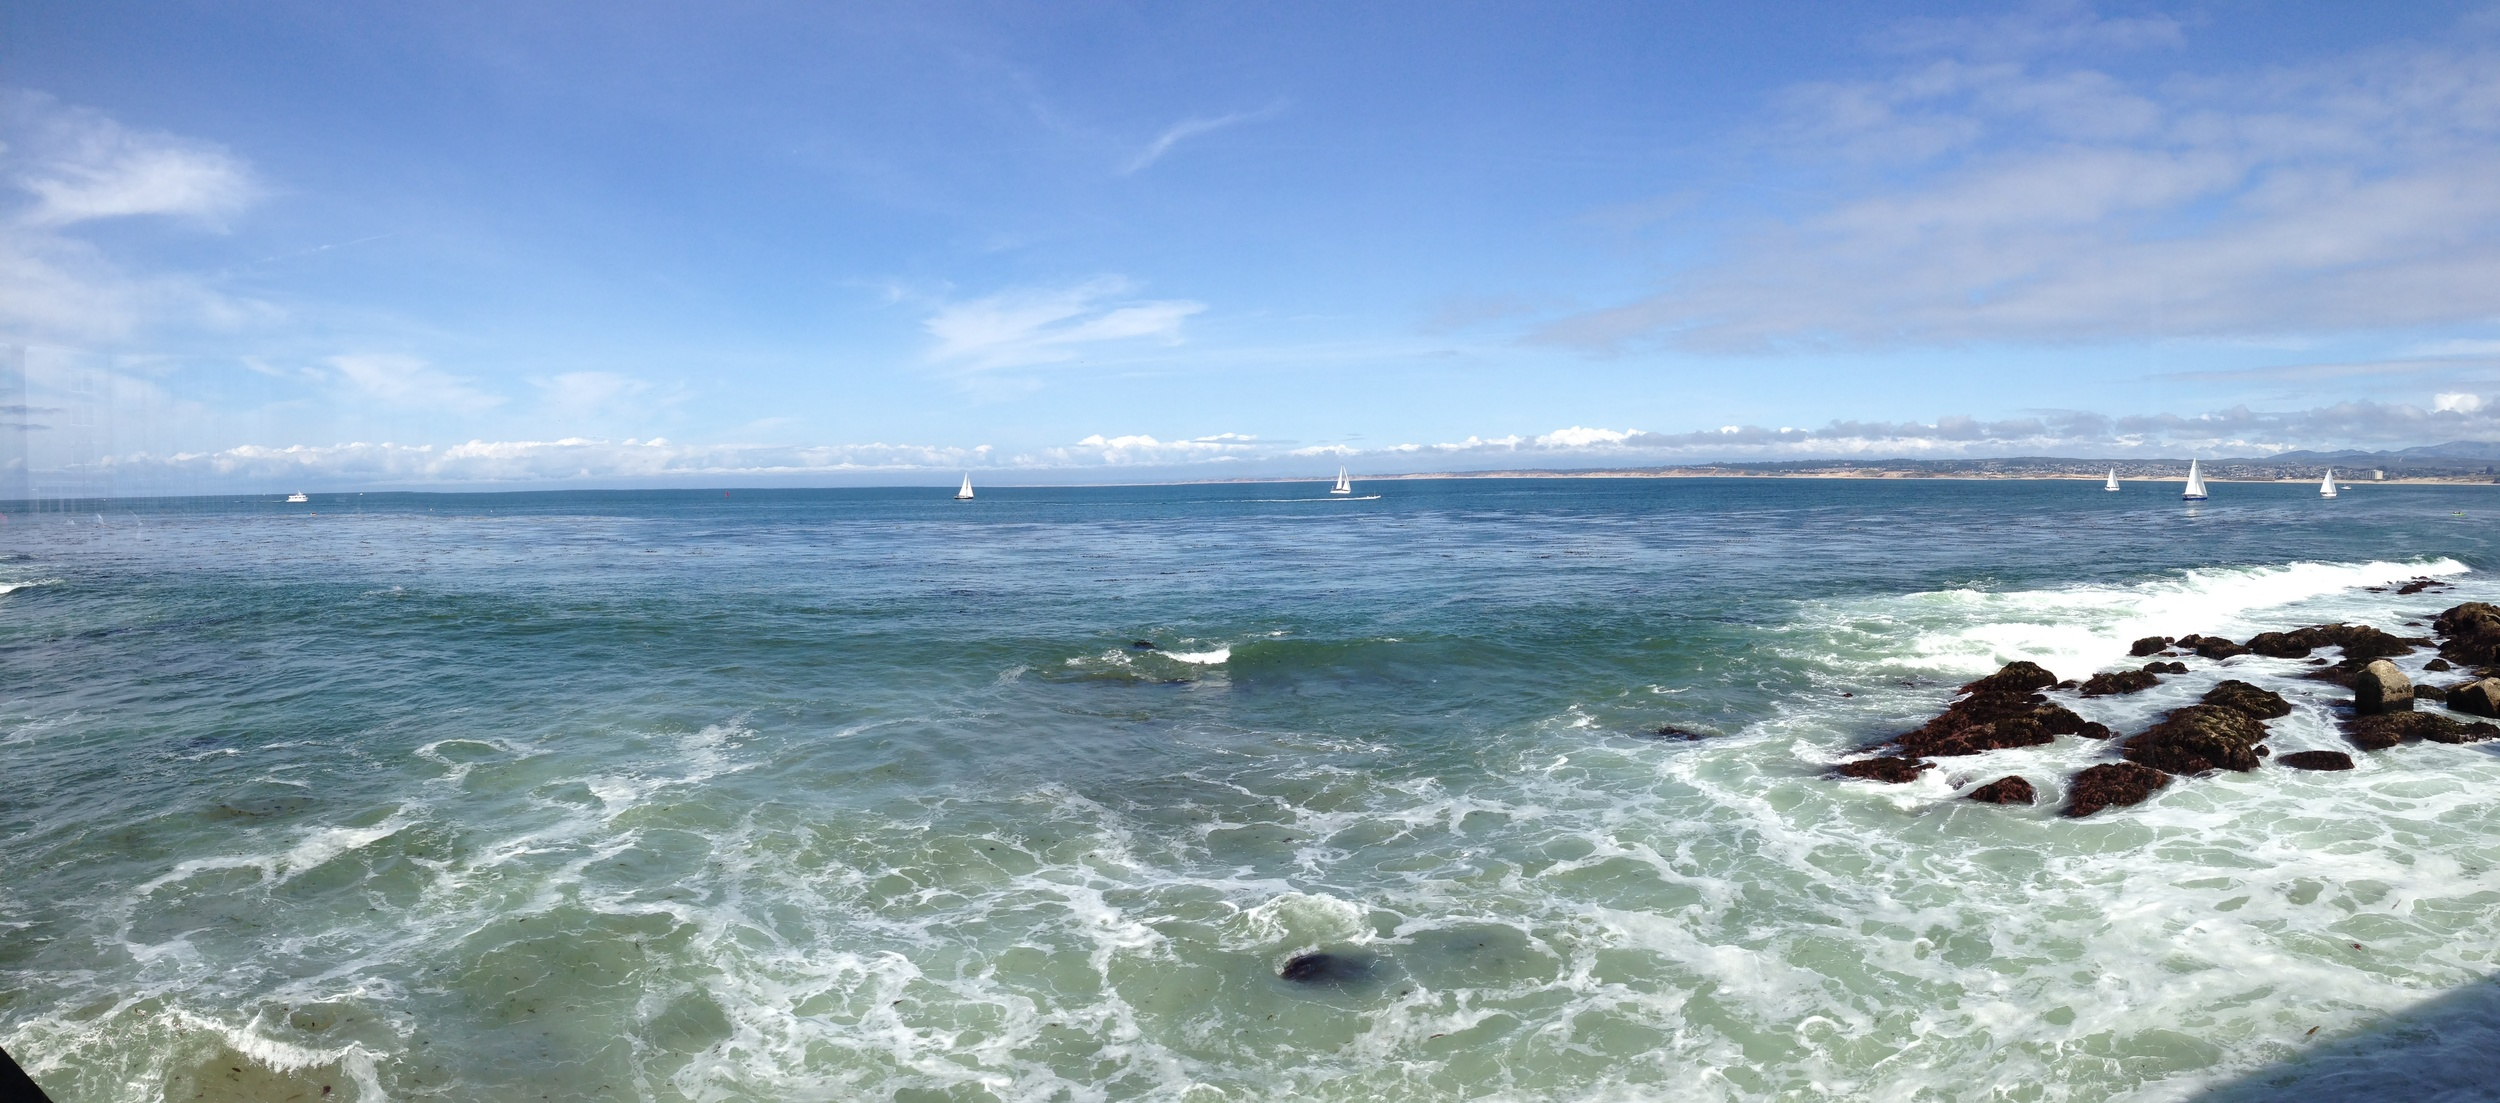 View from  The Fish Hopper  in Monterey Bay, California.